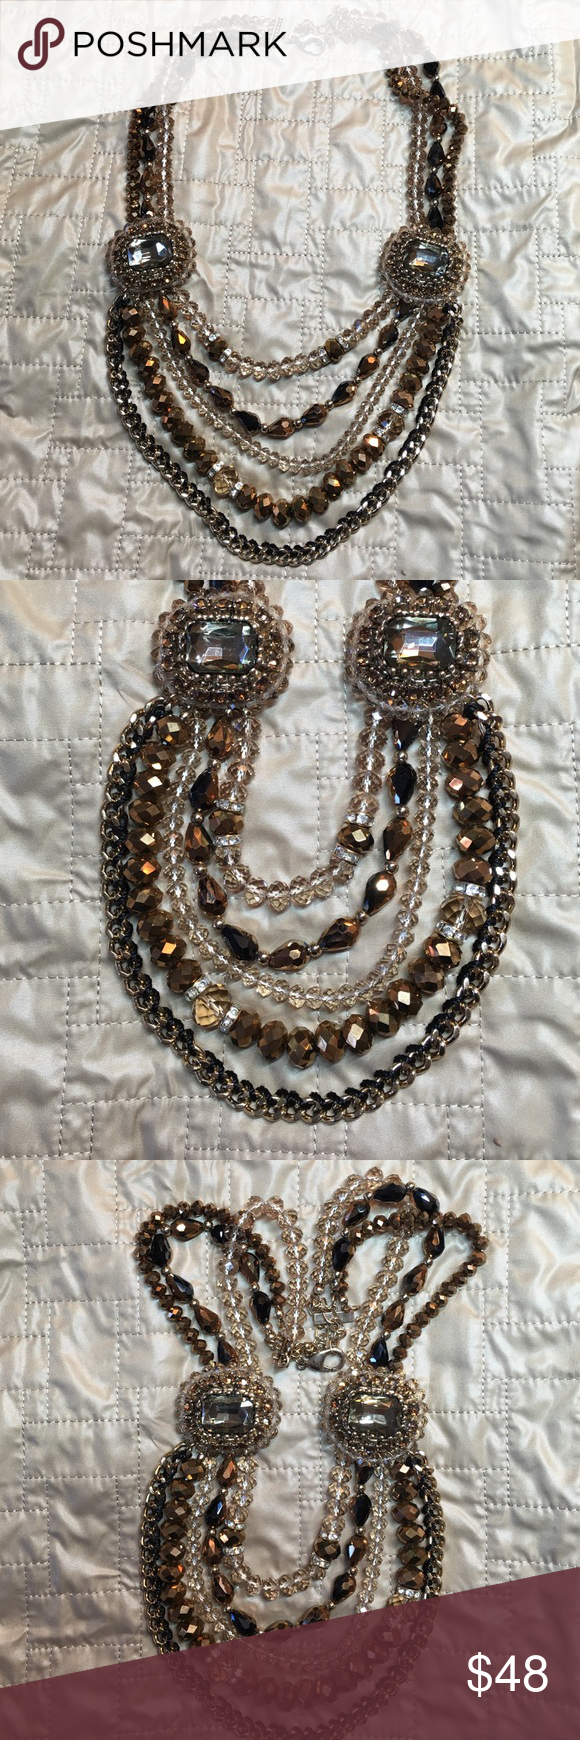 """Dressy Necklace gold and brown tones Dressy Necklace gold and brown tones.  Approximately 21"""" long x beads 3"""" wide.   Never been worn. Jewelry Necklaces"""